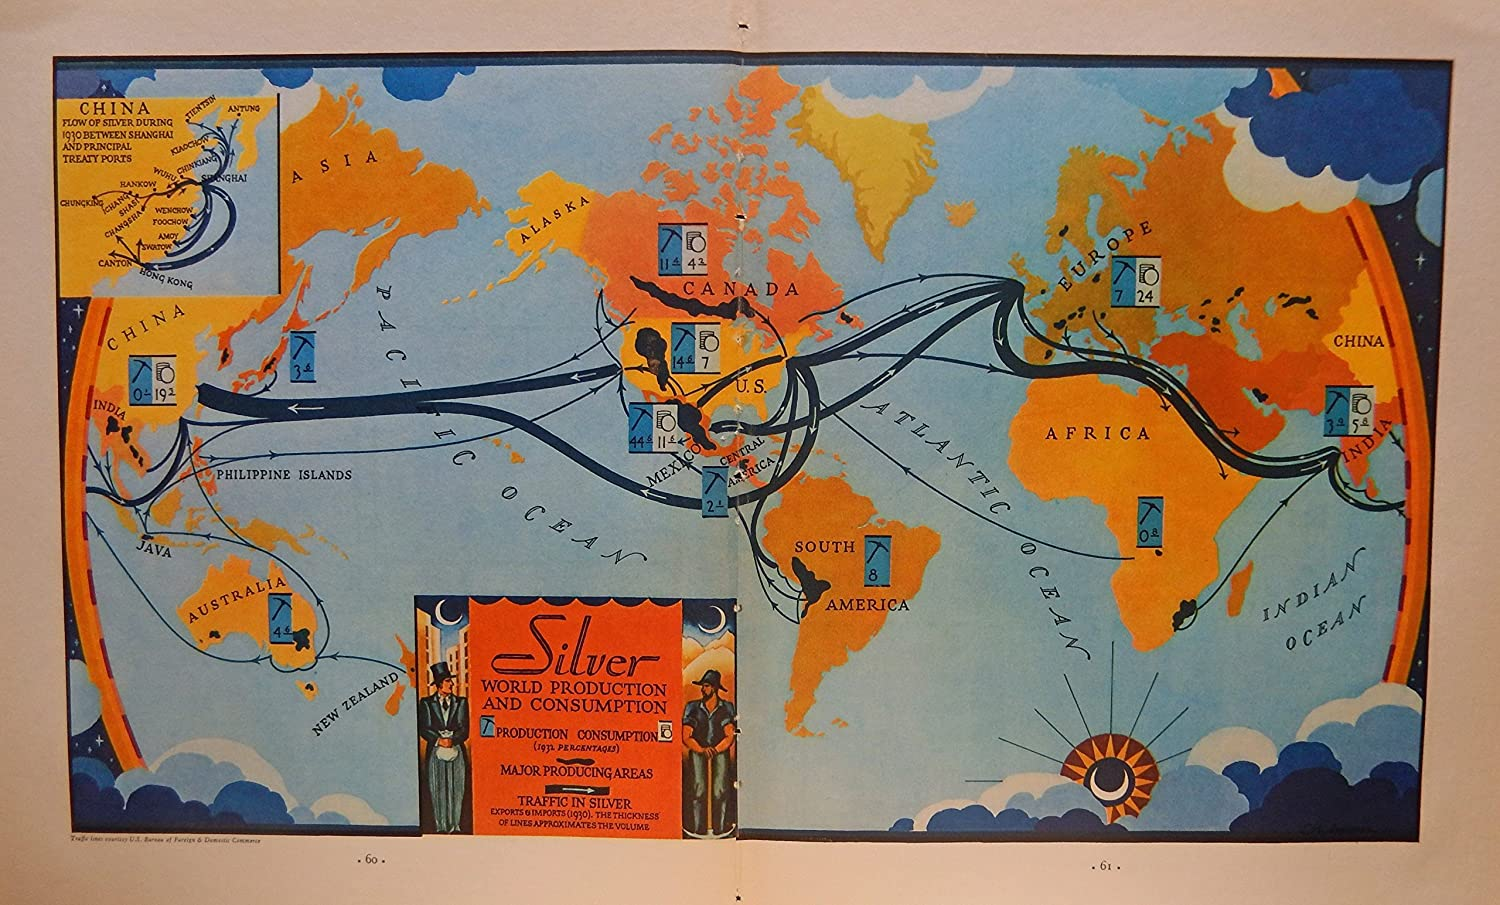 World Map 1933.Amazon Com Silver World Production And Consumption Traffic In